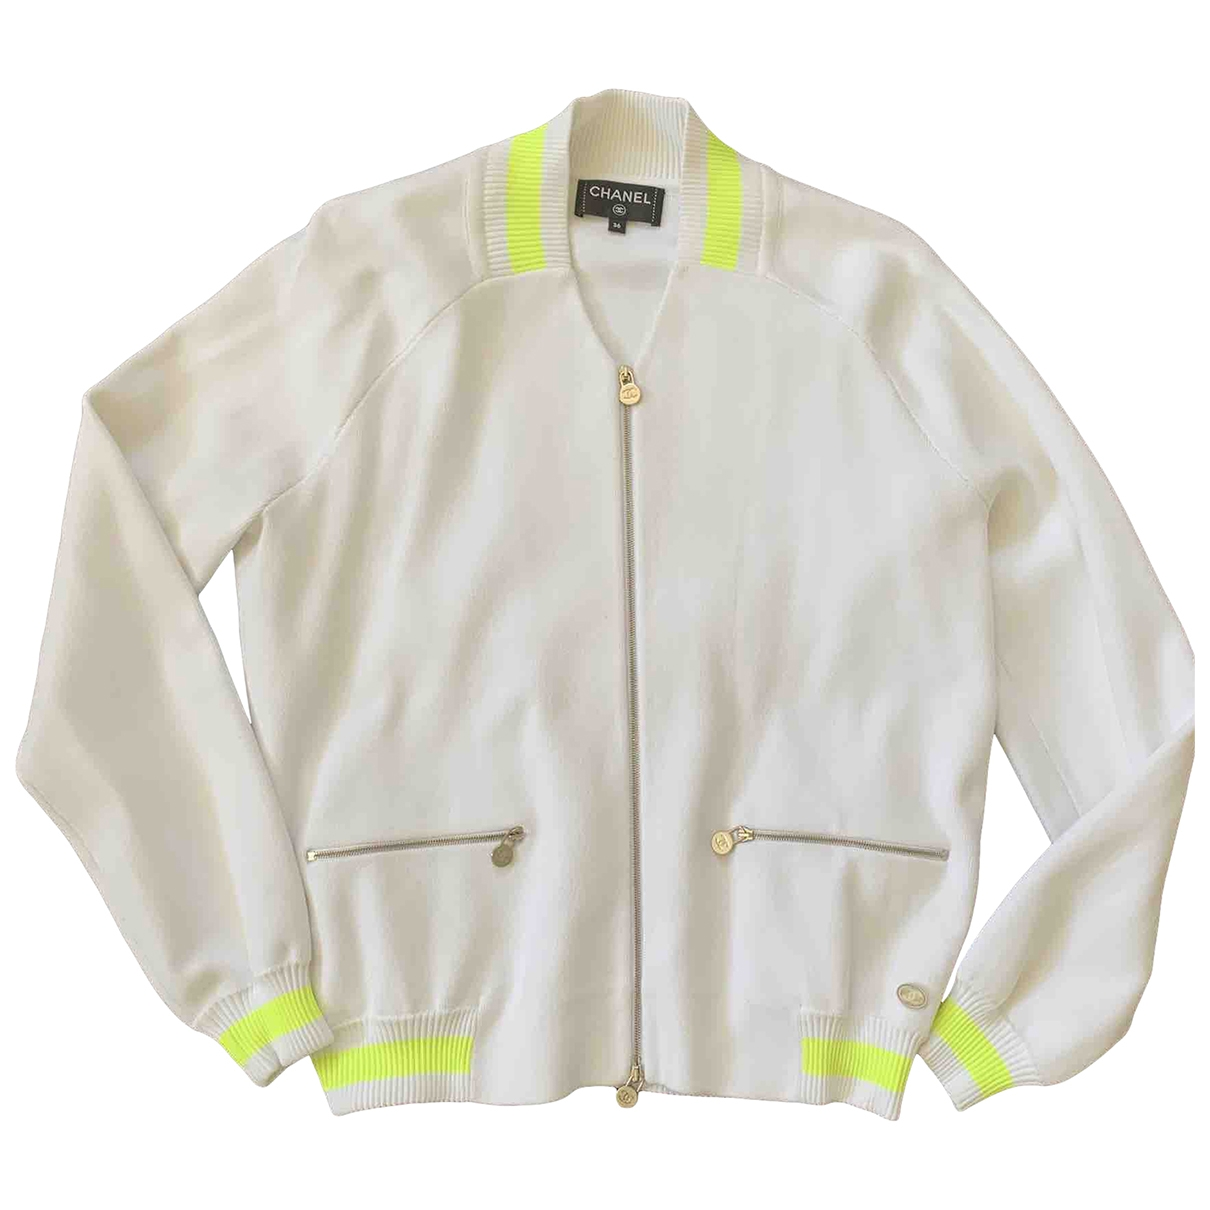 Chanel \N White jacket for Women 36 FR